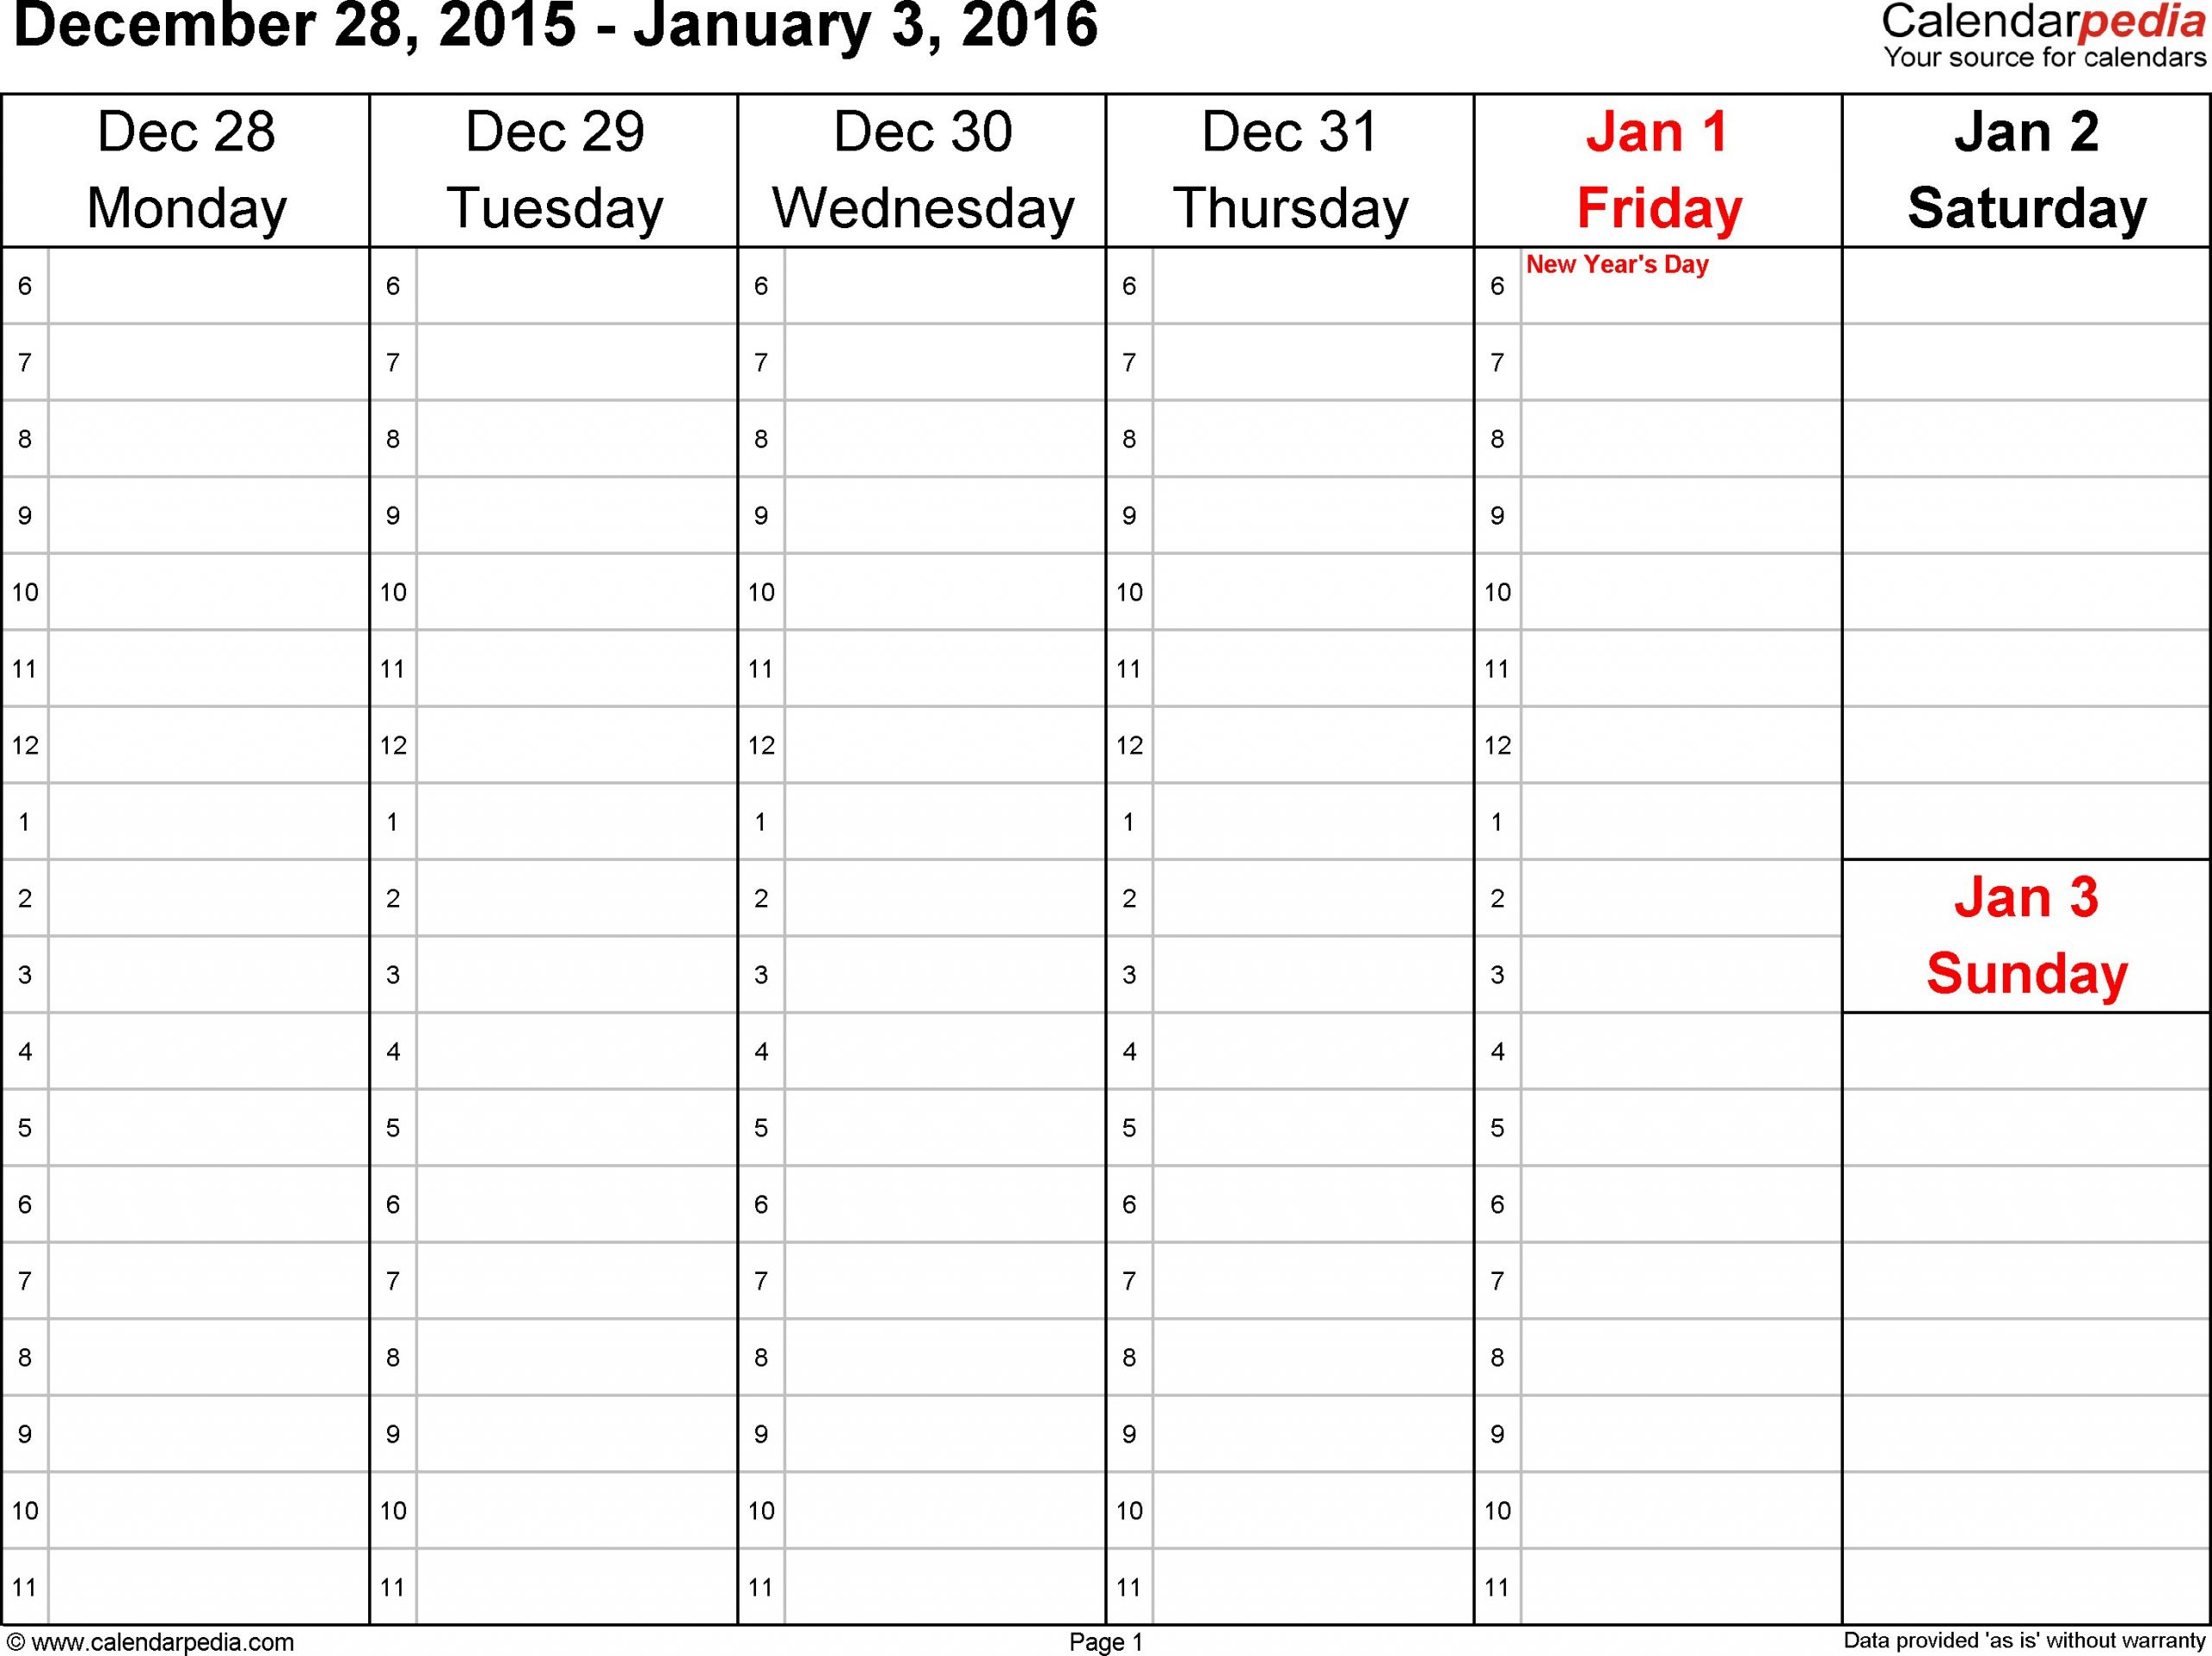 Free Printable Calendars Monday Thru Sunday | Calendar Schedule Template Printable Monday- Sunday